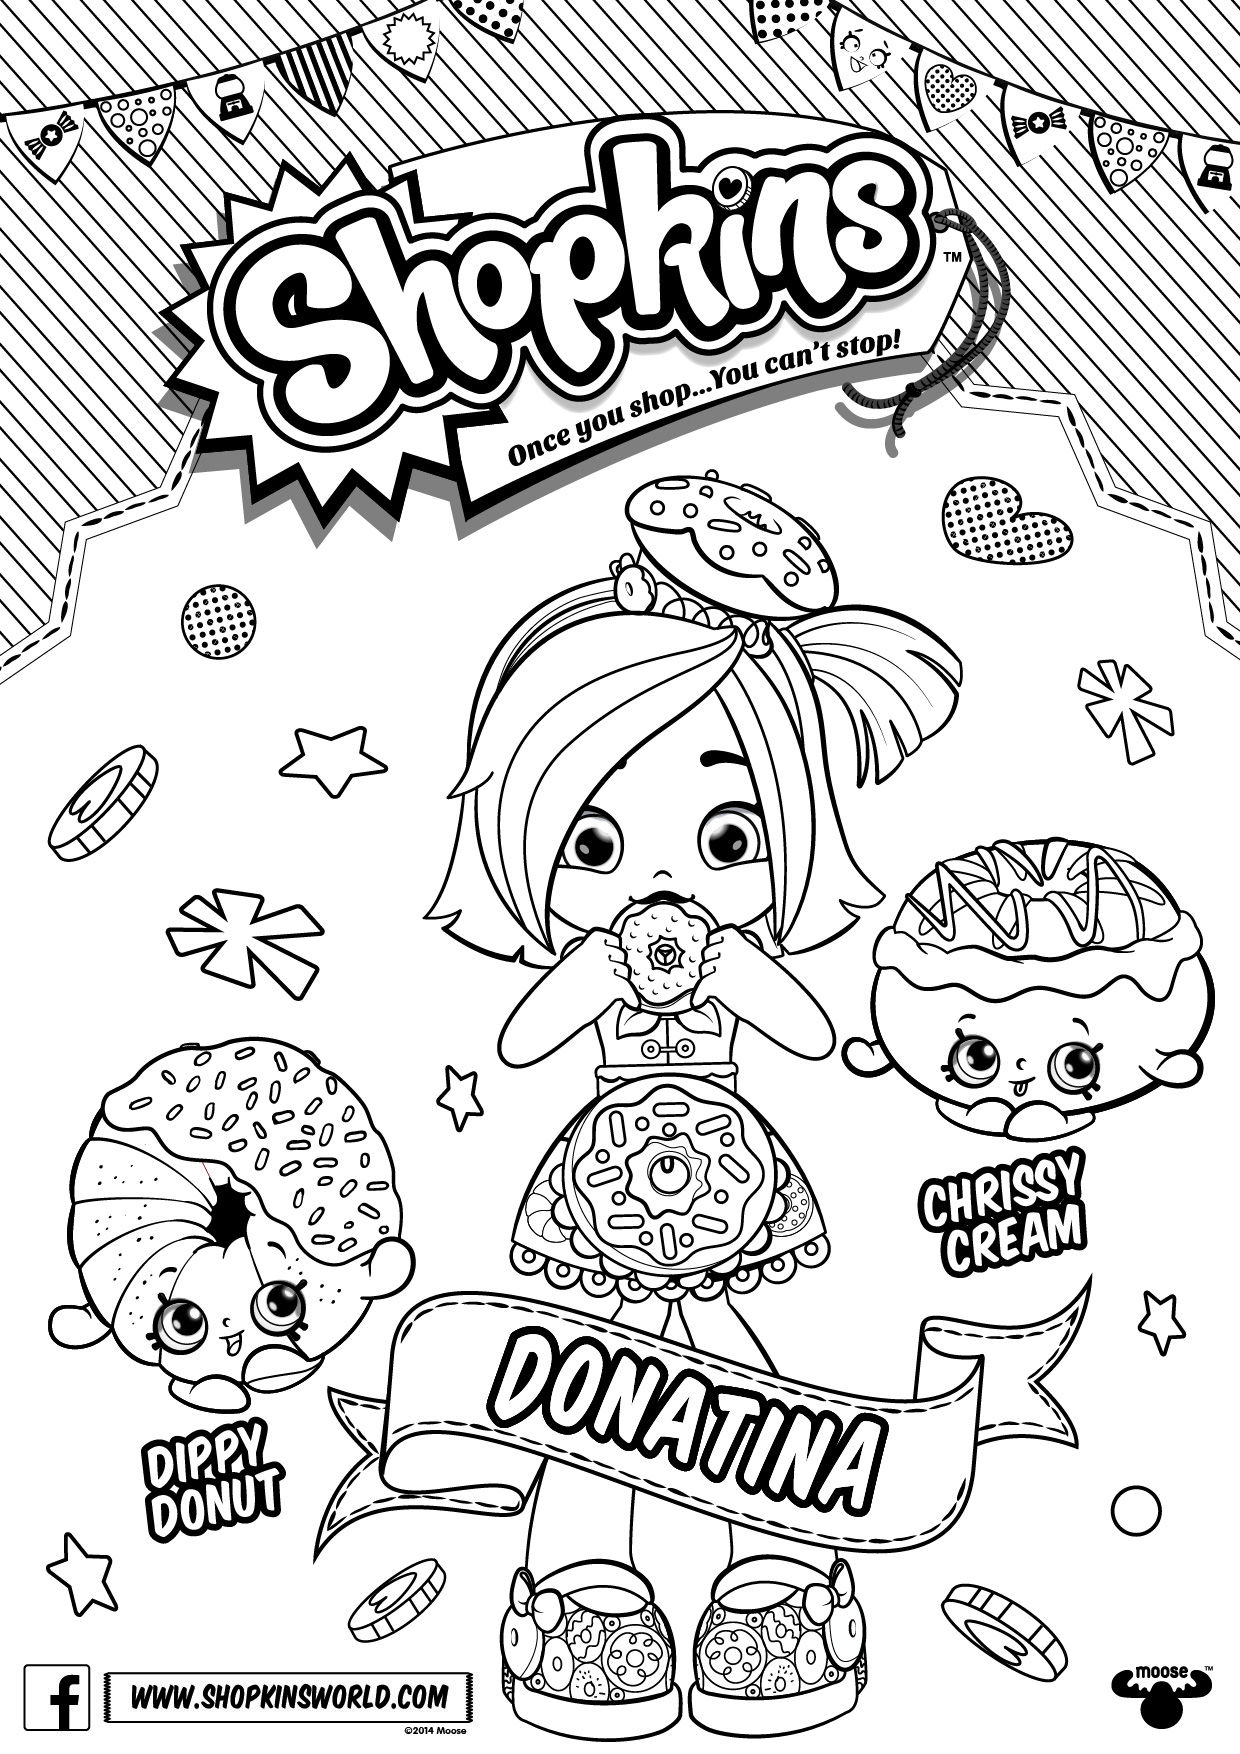 Shopkins Doll Chef Club Colour In Donatina  C B Shopkins Party Ideasdollclub Raspberryphotographycoloringfotografiepuppetraspberries